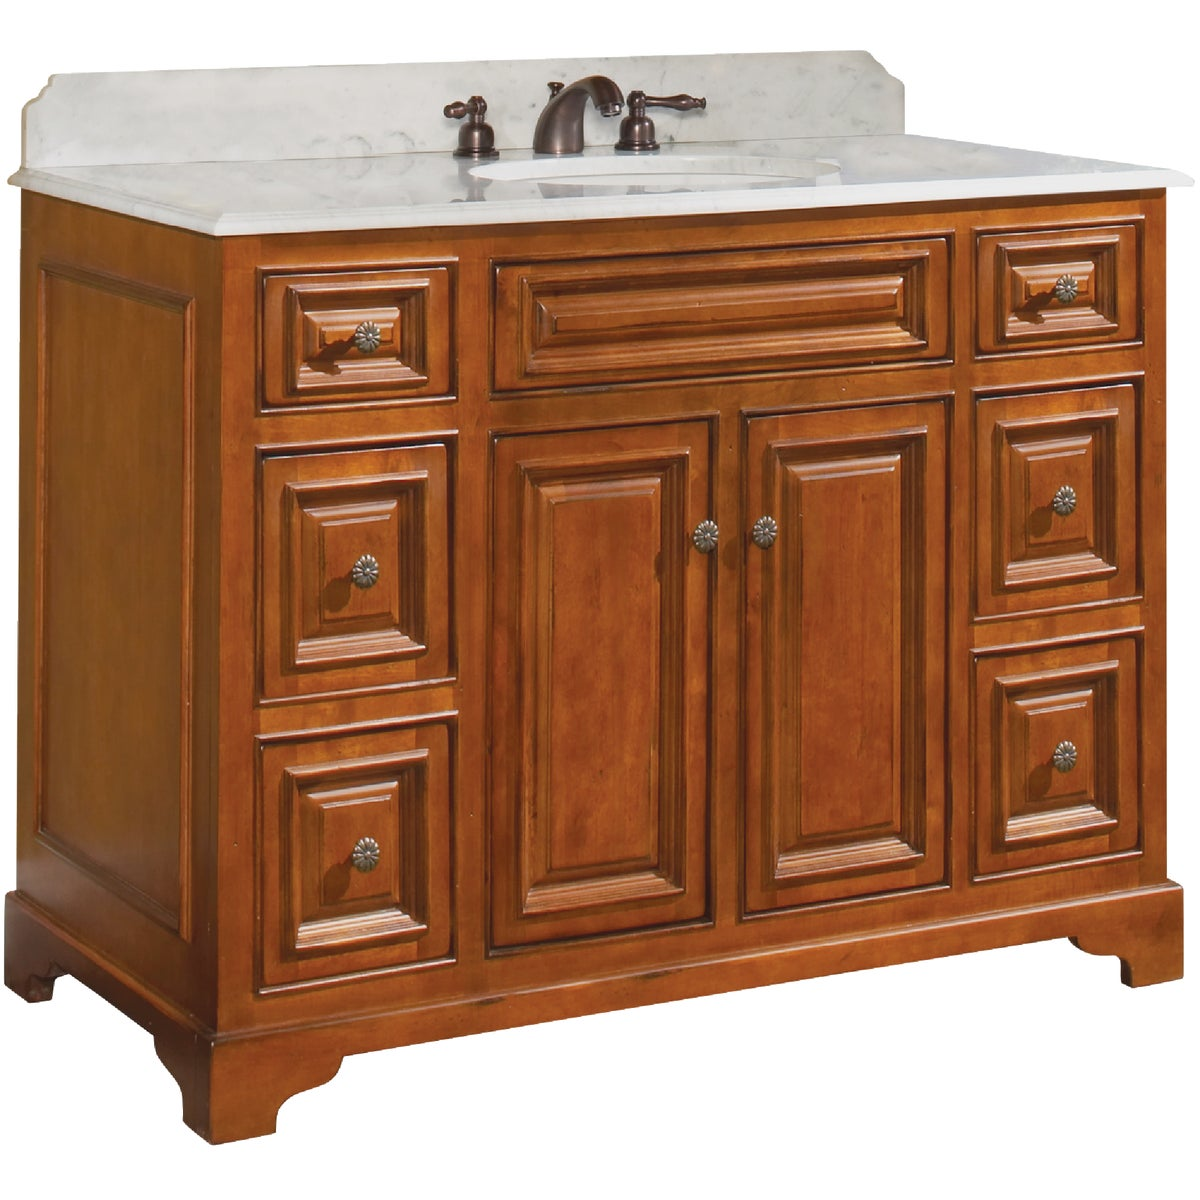 48X21 CAMBRIAN VANITY - CB4821D by Sunnywood Products